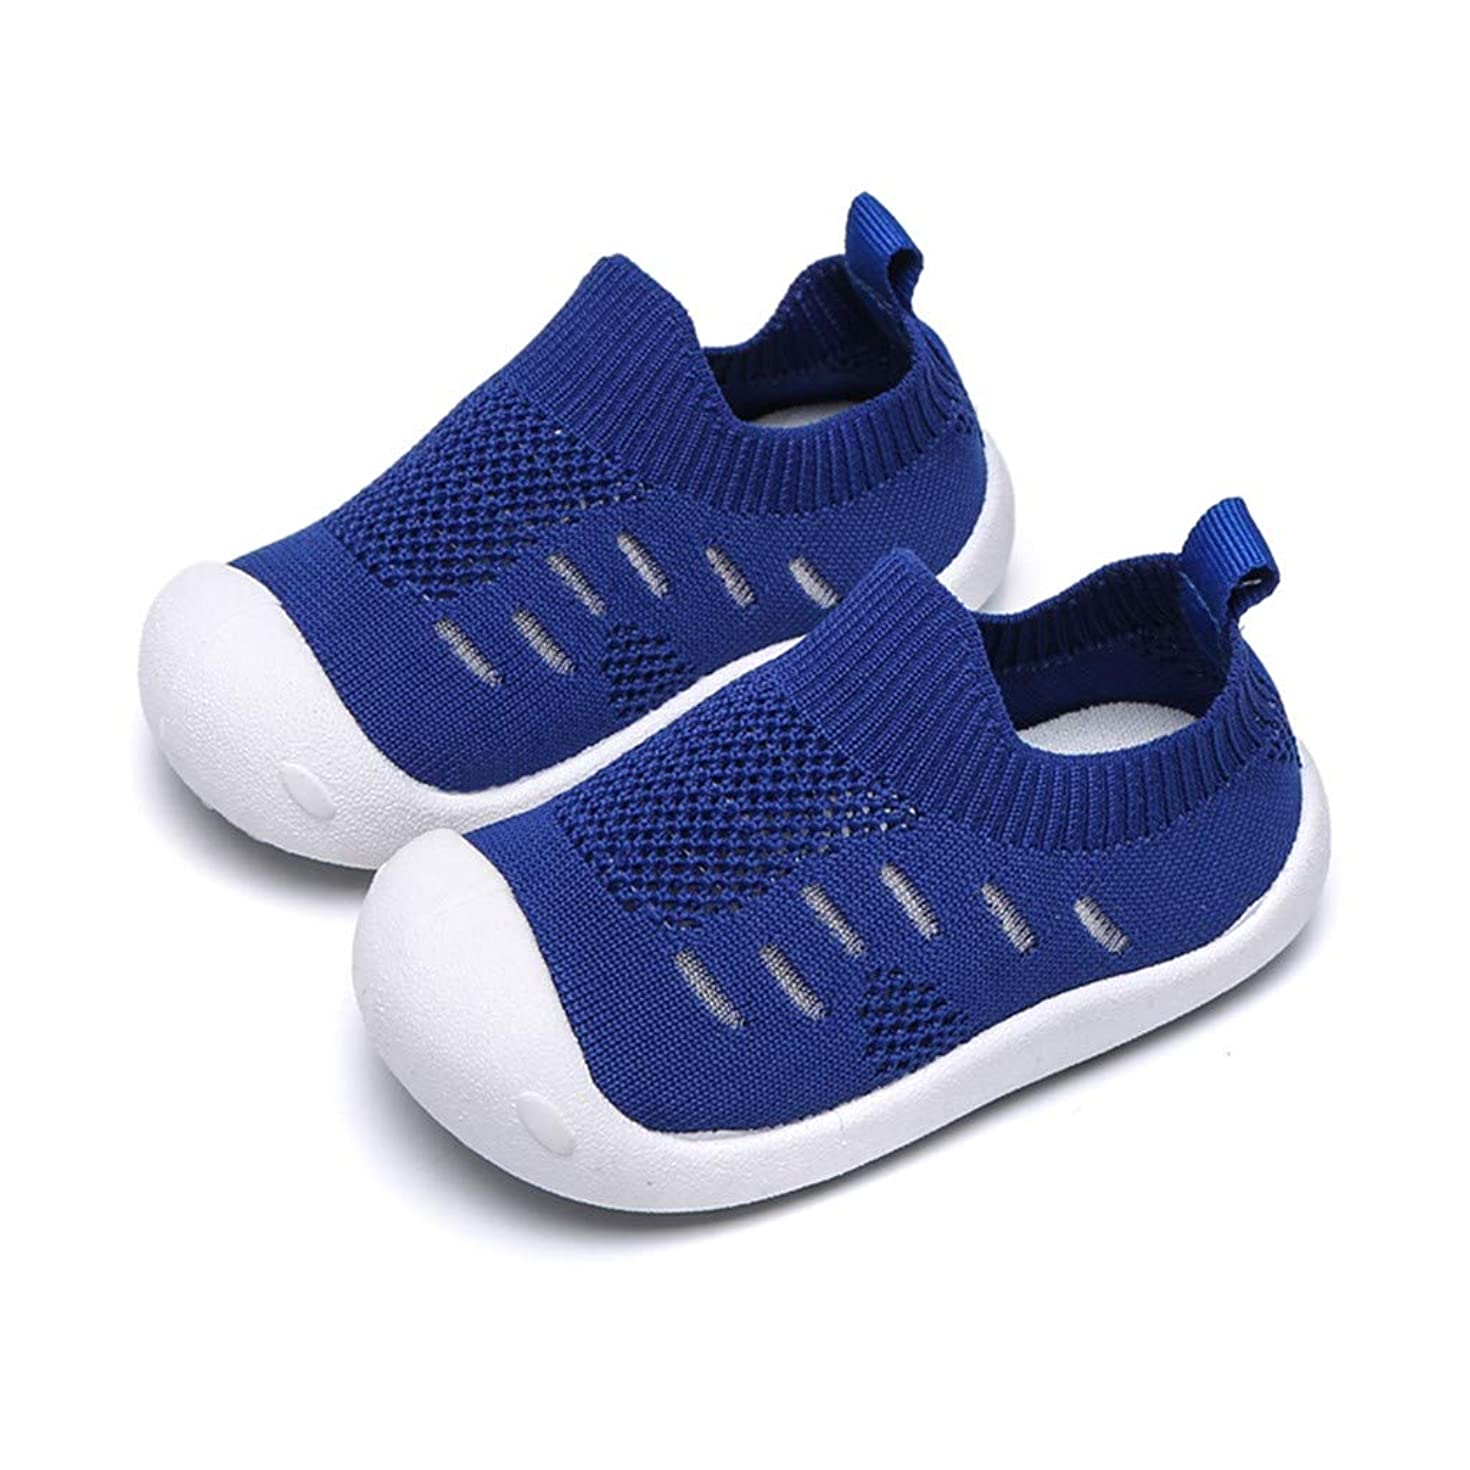 Haalife???Kid's Casual Knit Shoes Athletic Walking Shoes Lightweight Mesh-Comfortable Slip on Sneakers